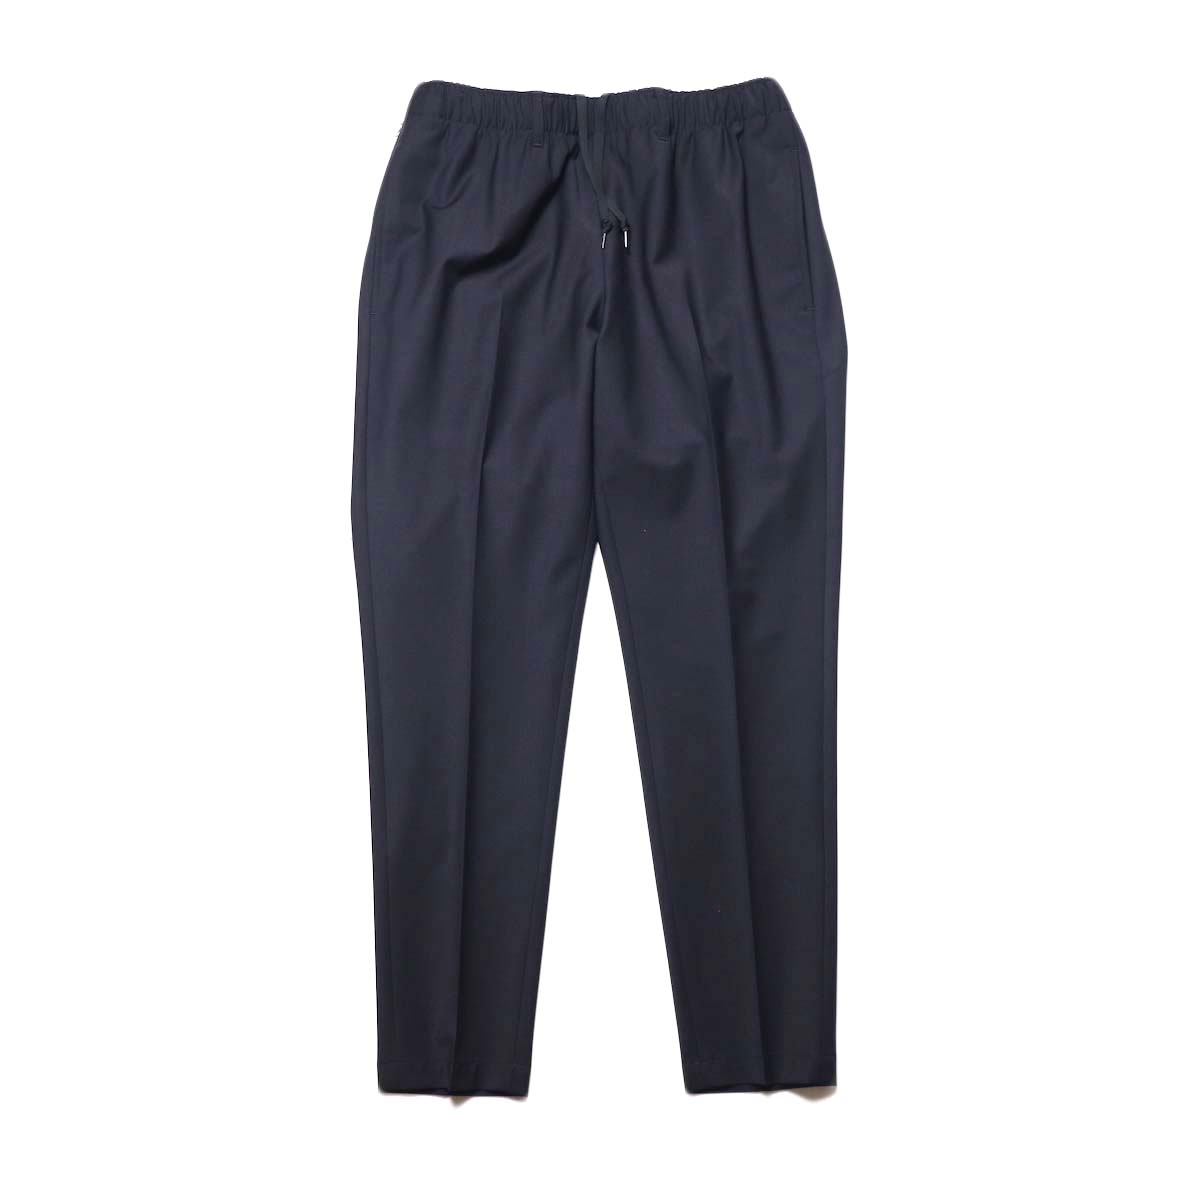 N.HOOLYWOOD / 2202-CP07-002 TAPERED EASY PANTS (Navy)